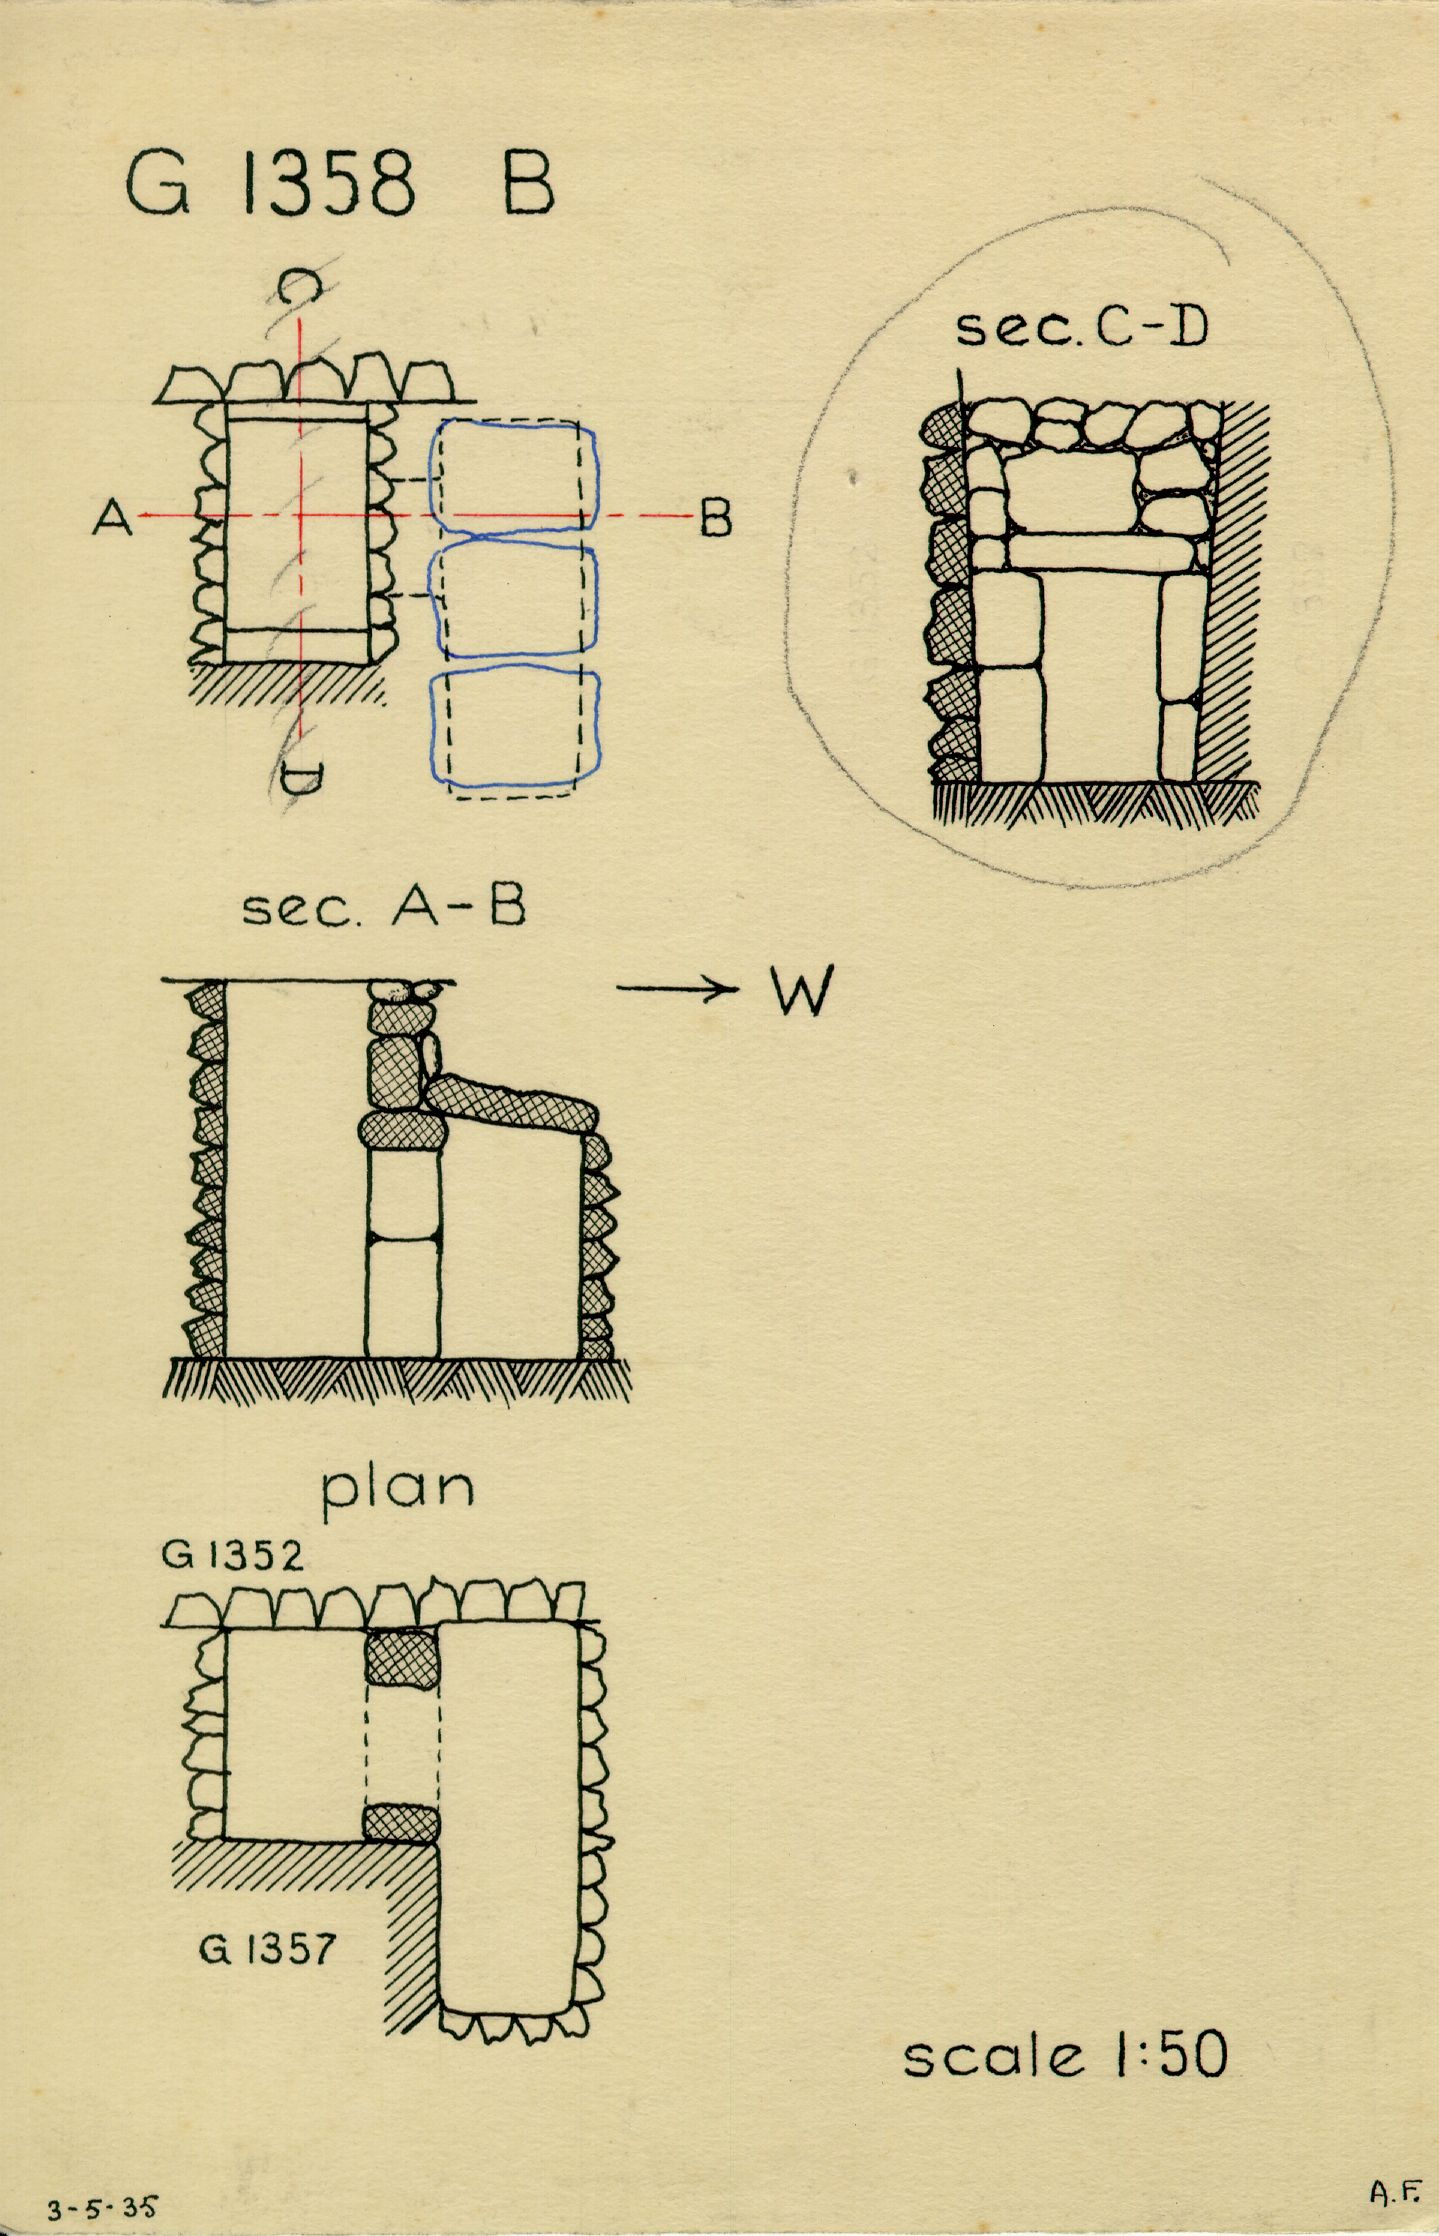 Maps and plans: G 1358, Shaft B